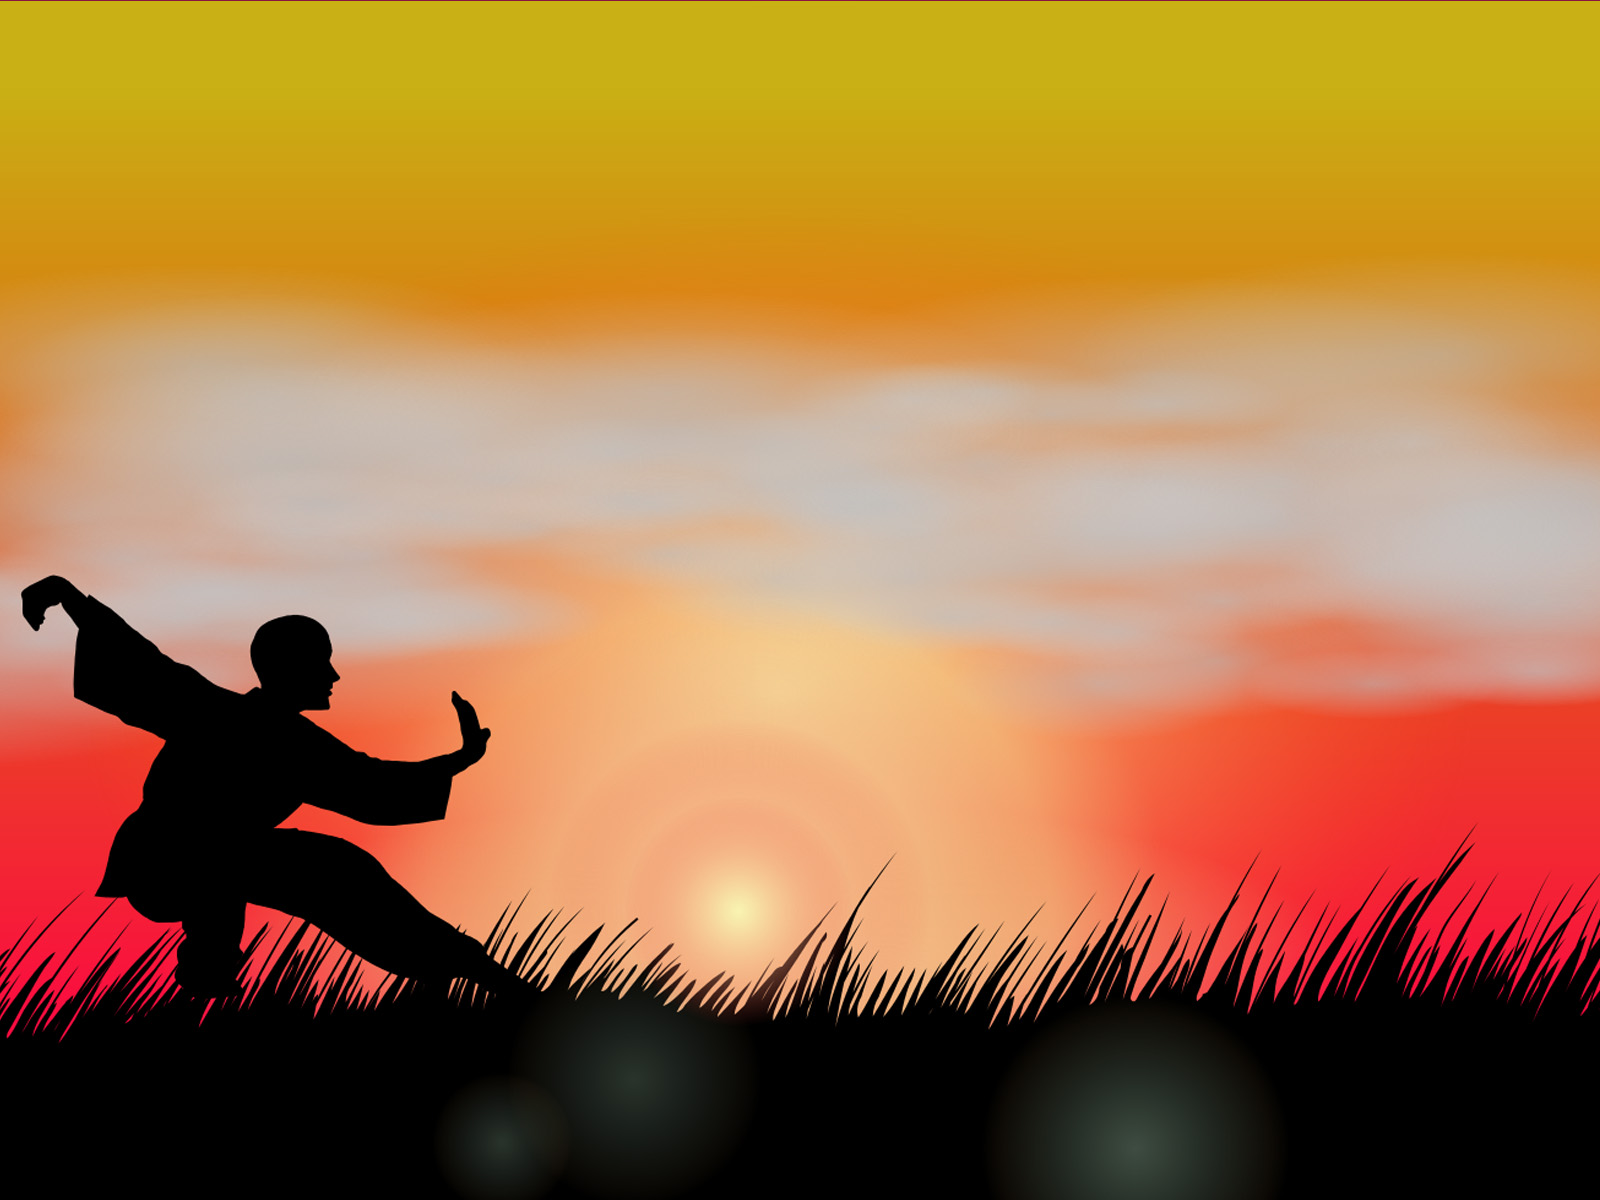 Wushu at Sunset Backgrounds | Black, Red, Sports, White ...